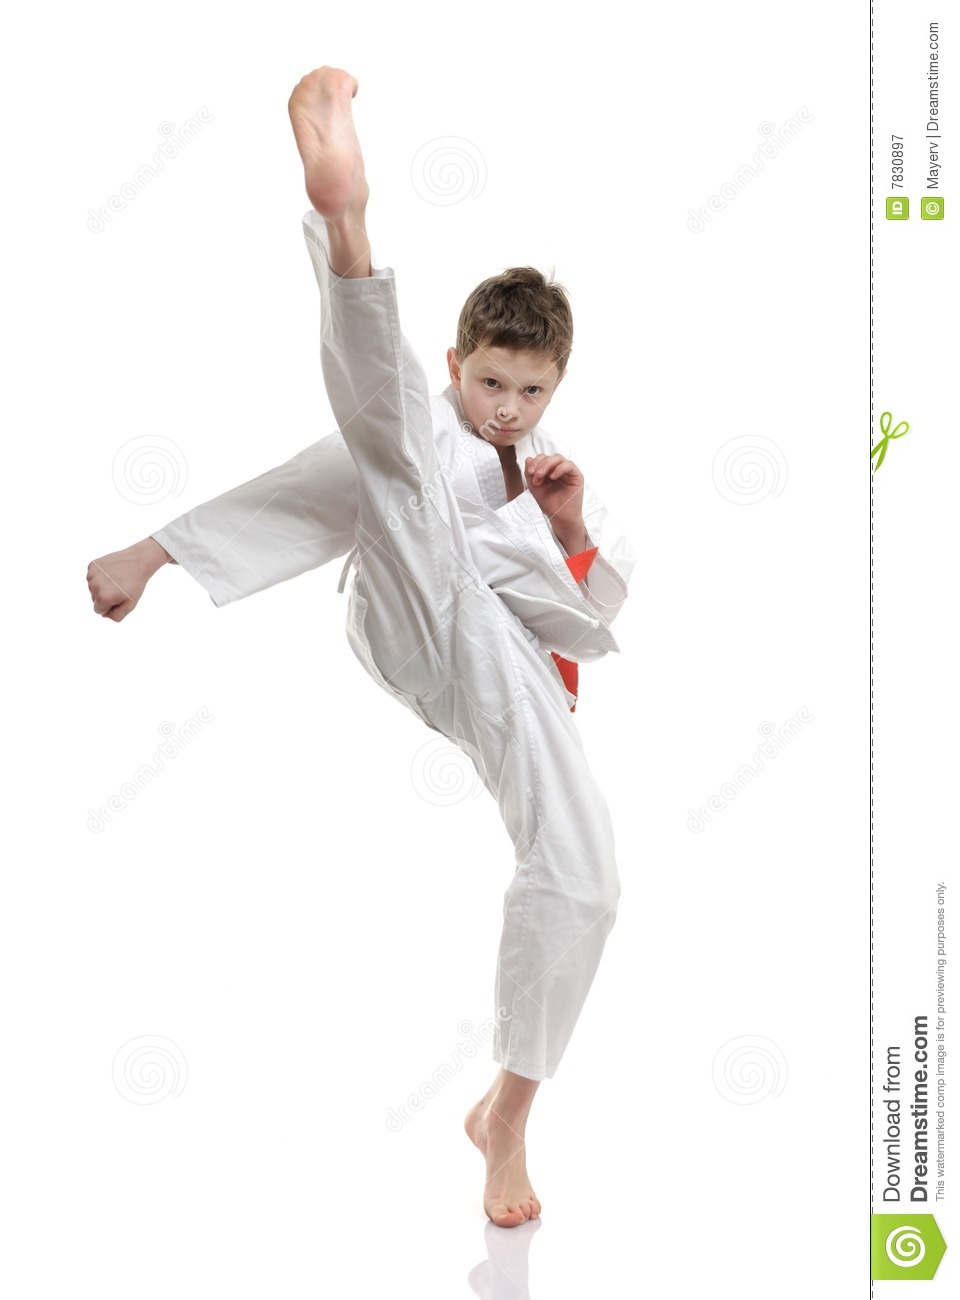 Karate Kid Royalty Free Stock Photography - Image: 7830897